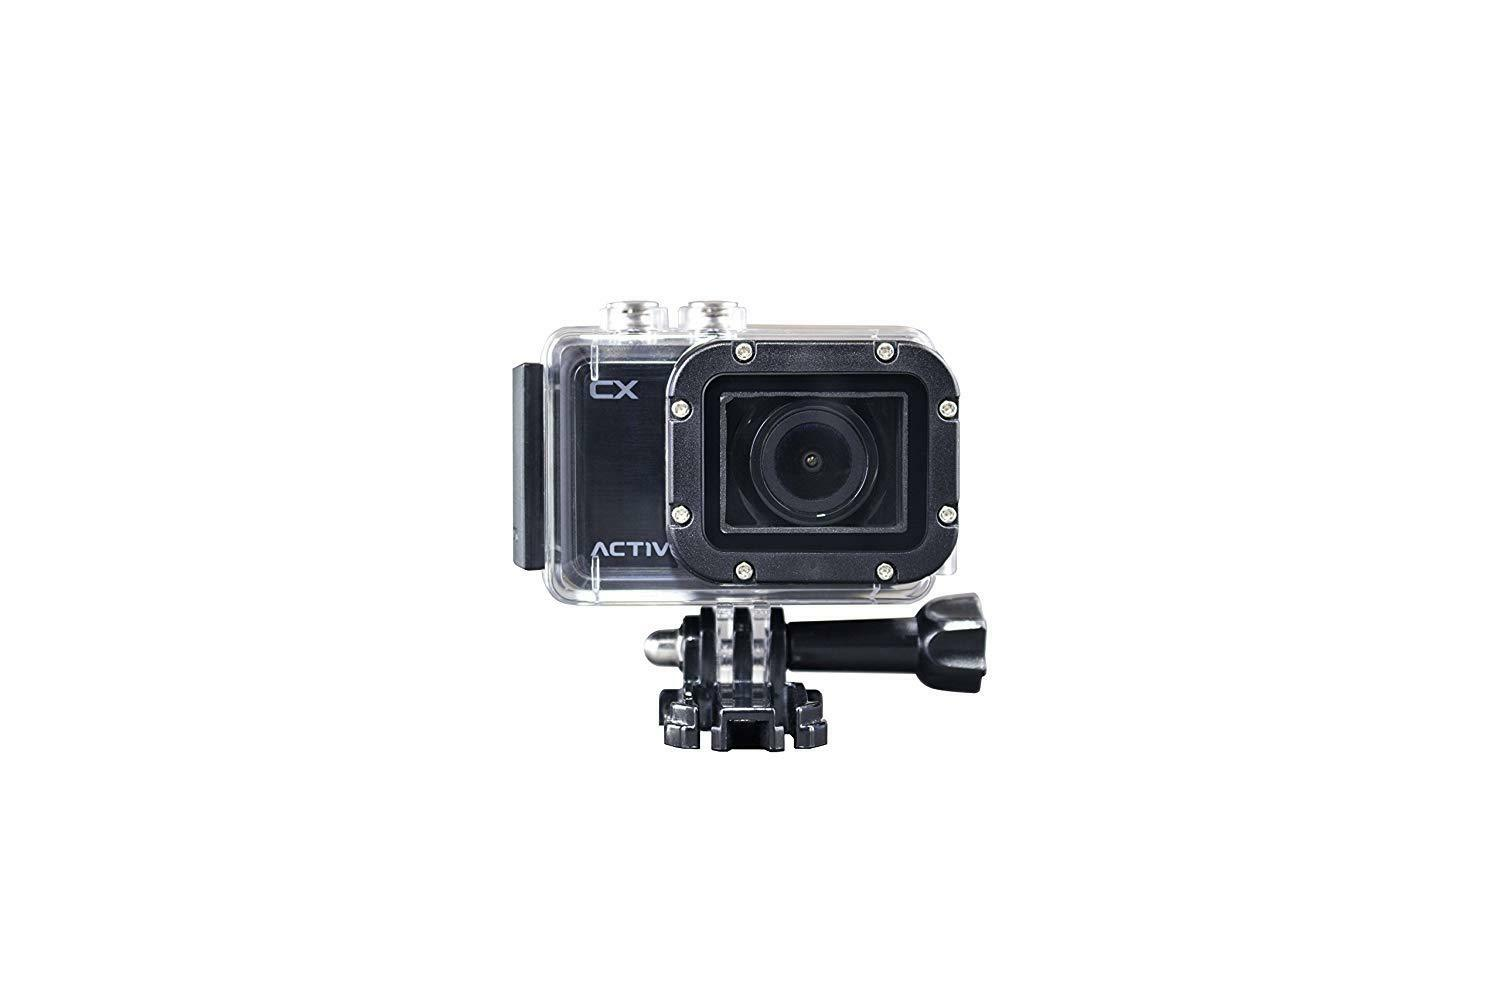 Activeon CX Action Camera 1080p 5MP Waterproof Camcorder (CCA10W) - LIKE NEW™ Featured